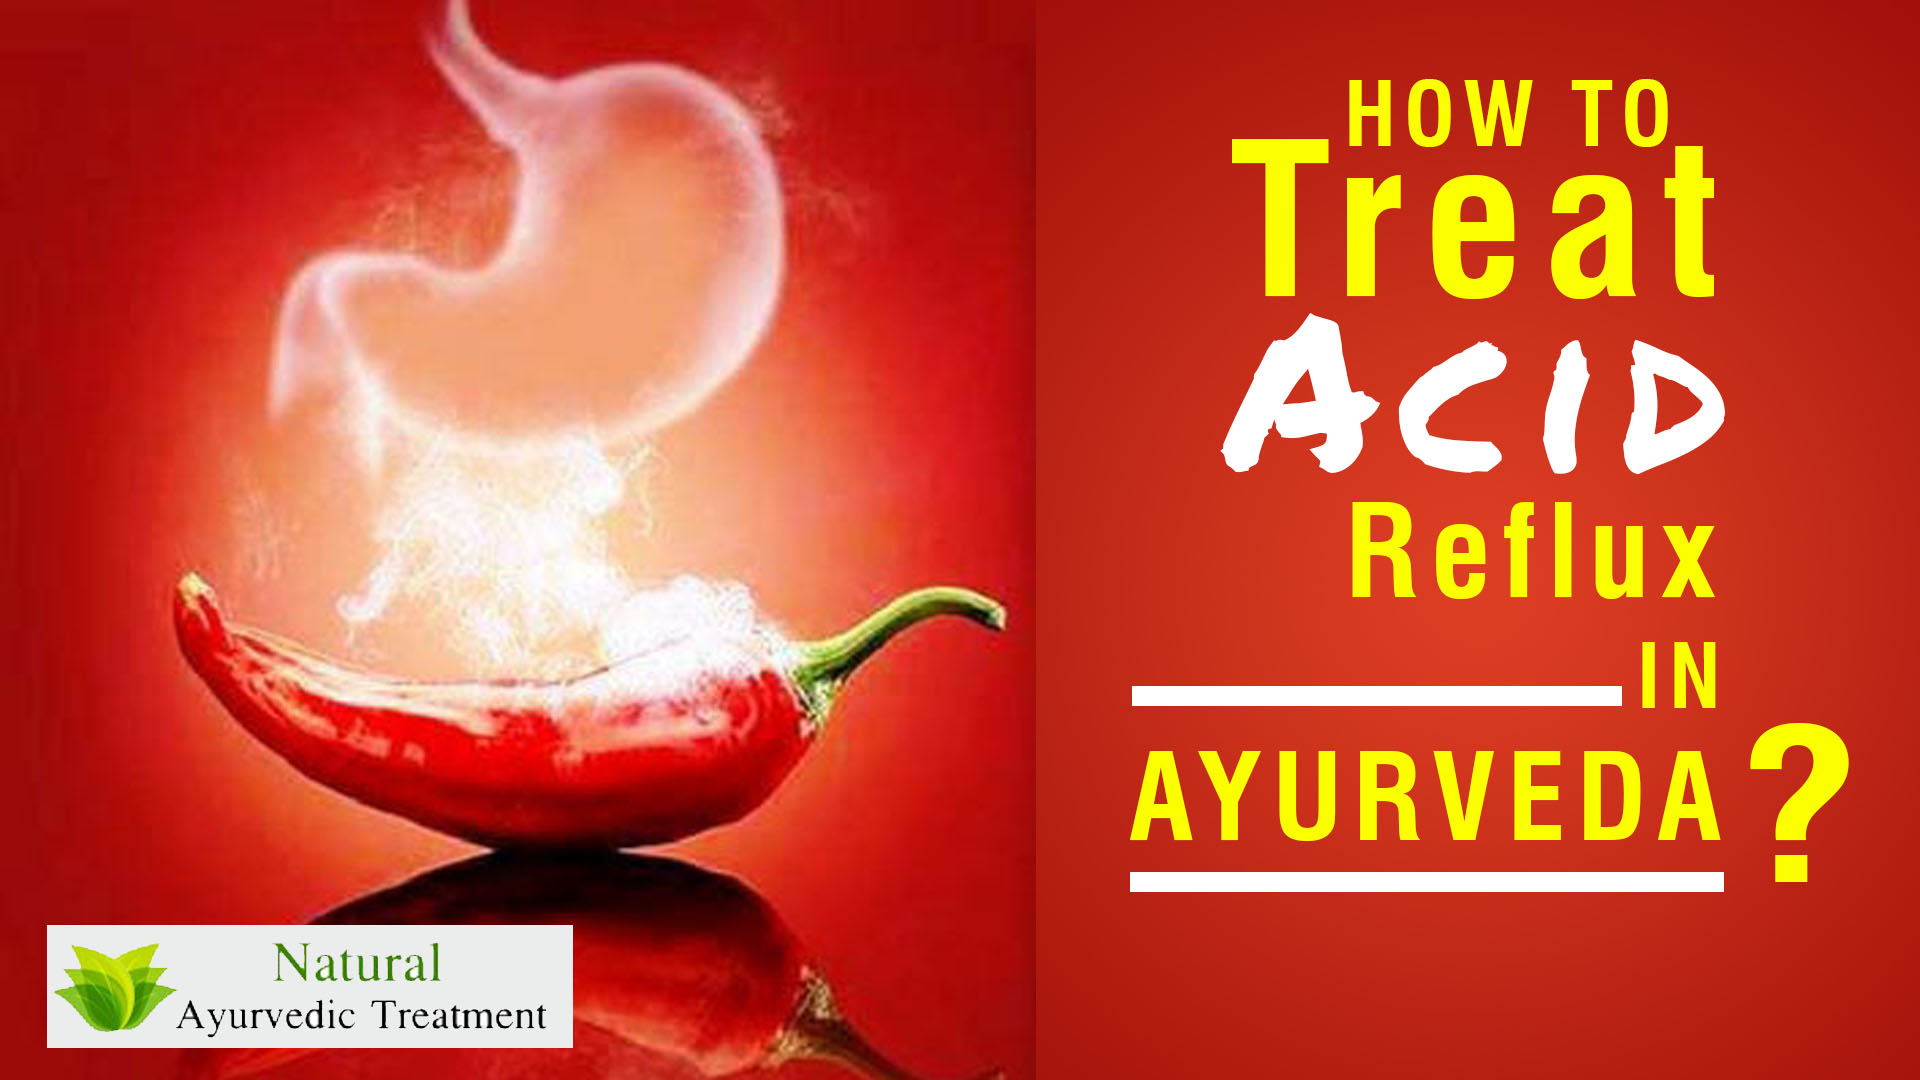 How to Treat Acid Reflux in Ayurveda?